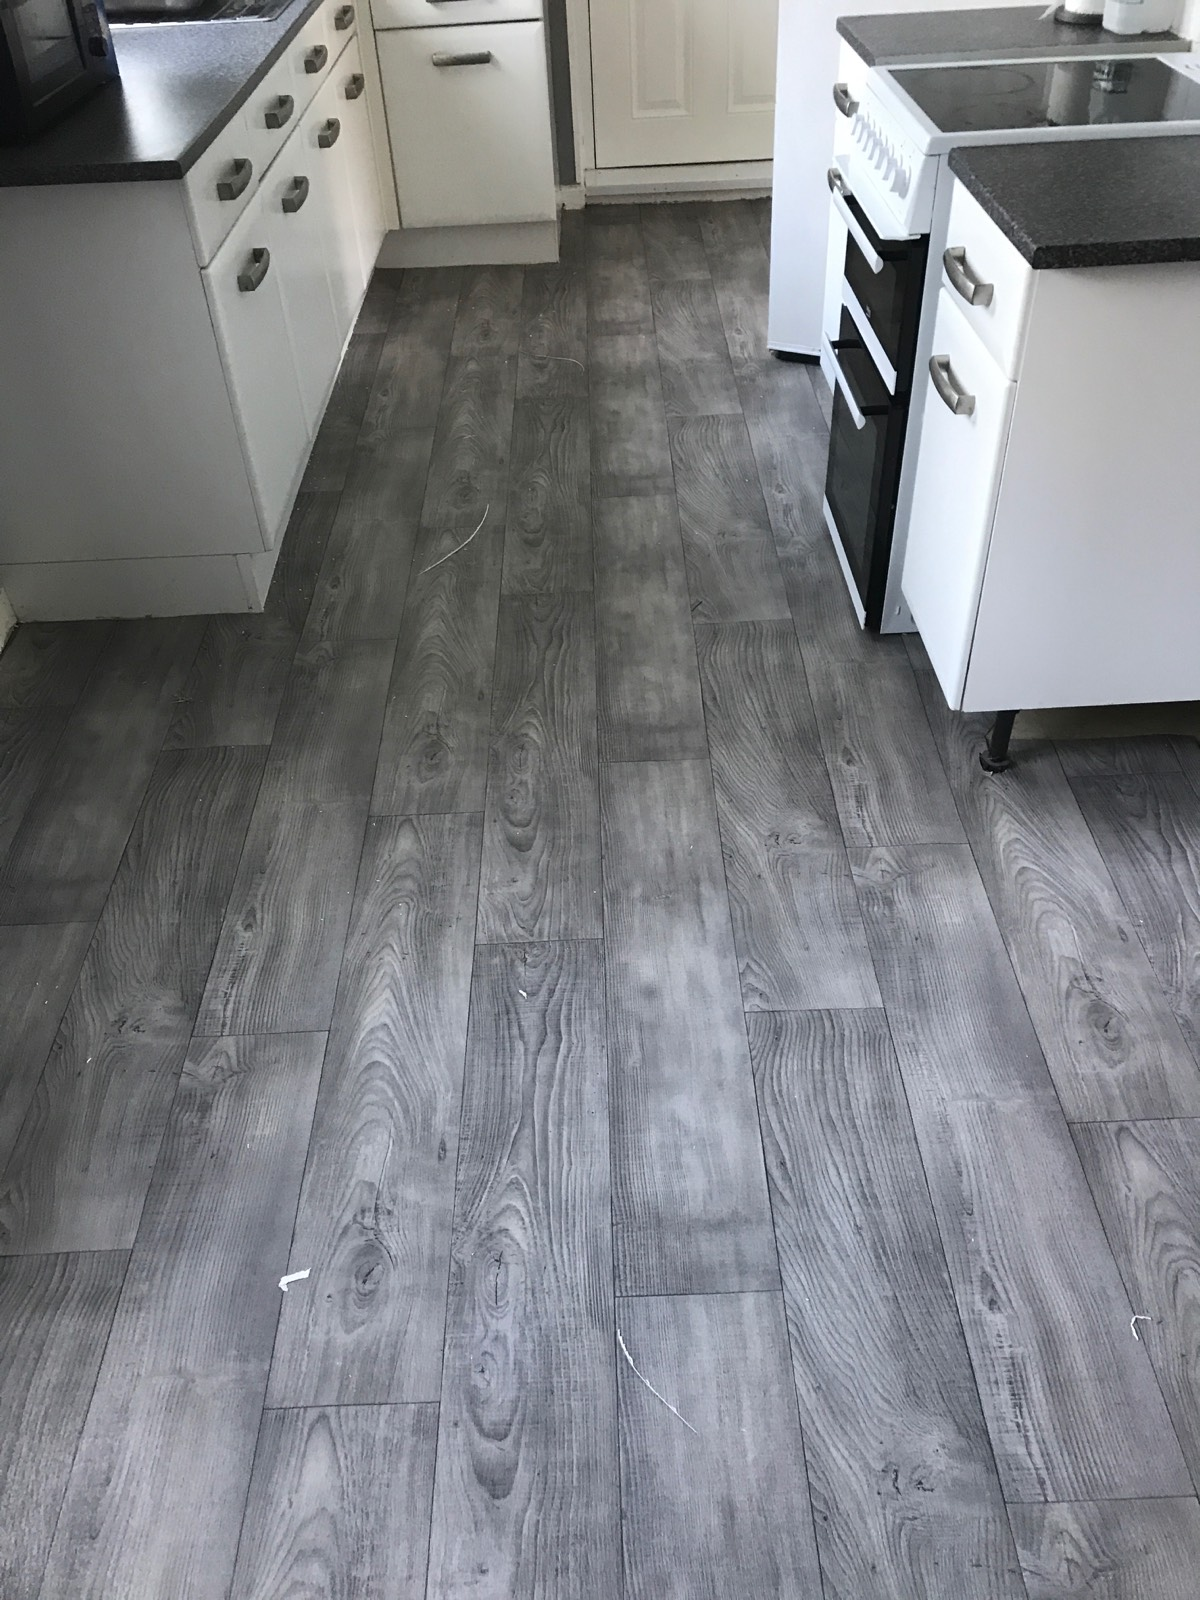 light grey vinyl flooring with laminate design in kitchen with white units